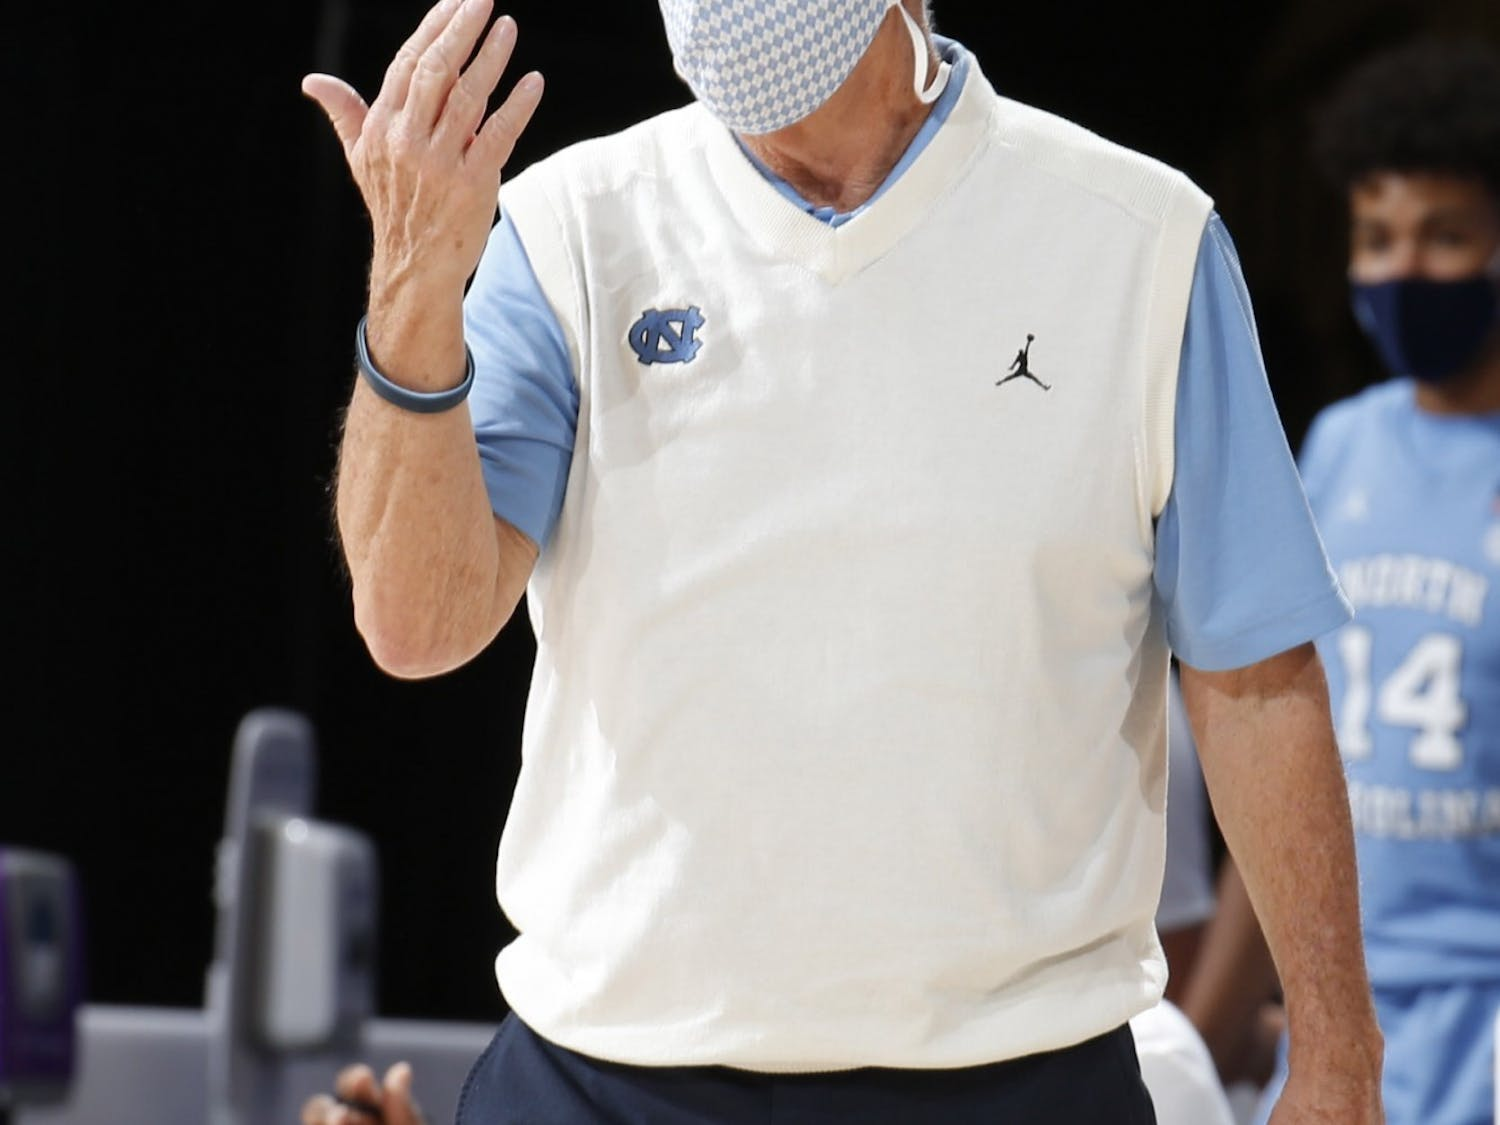 UNC's men's basketball coach Roy Williams communicates with players during a game against Stanford during the Maui Invitational Tournament in Asheville, N.C. on Tuesday, Dec. 1, 2020. UNC beat Stanford 67-63. Photo courtesy of Brian Spurlock/Camping World Maui Invitational.